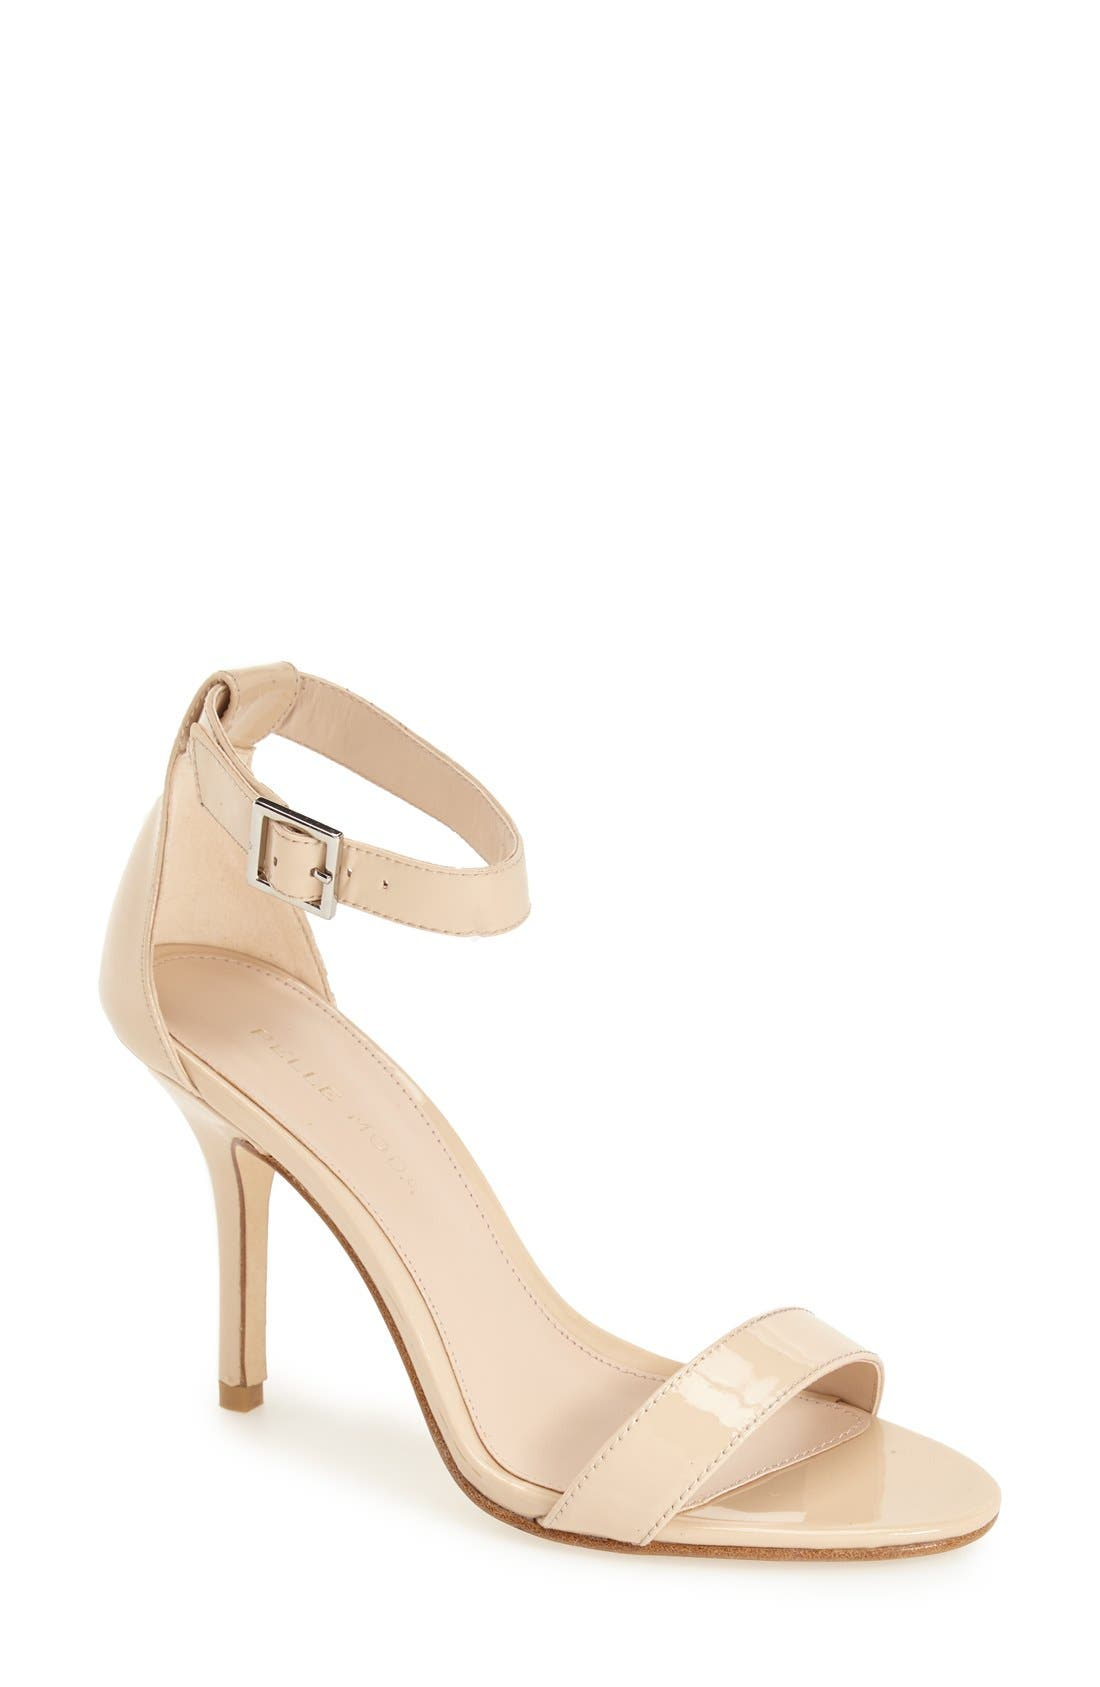 Alternate Image 1 Selected - Pelle Moda Kacey Sandal (Women)